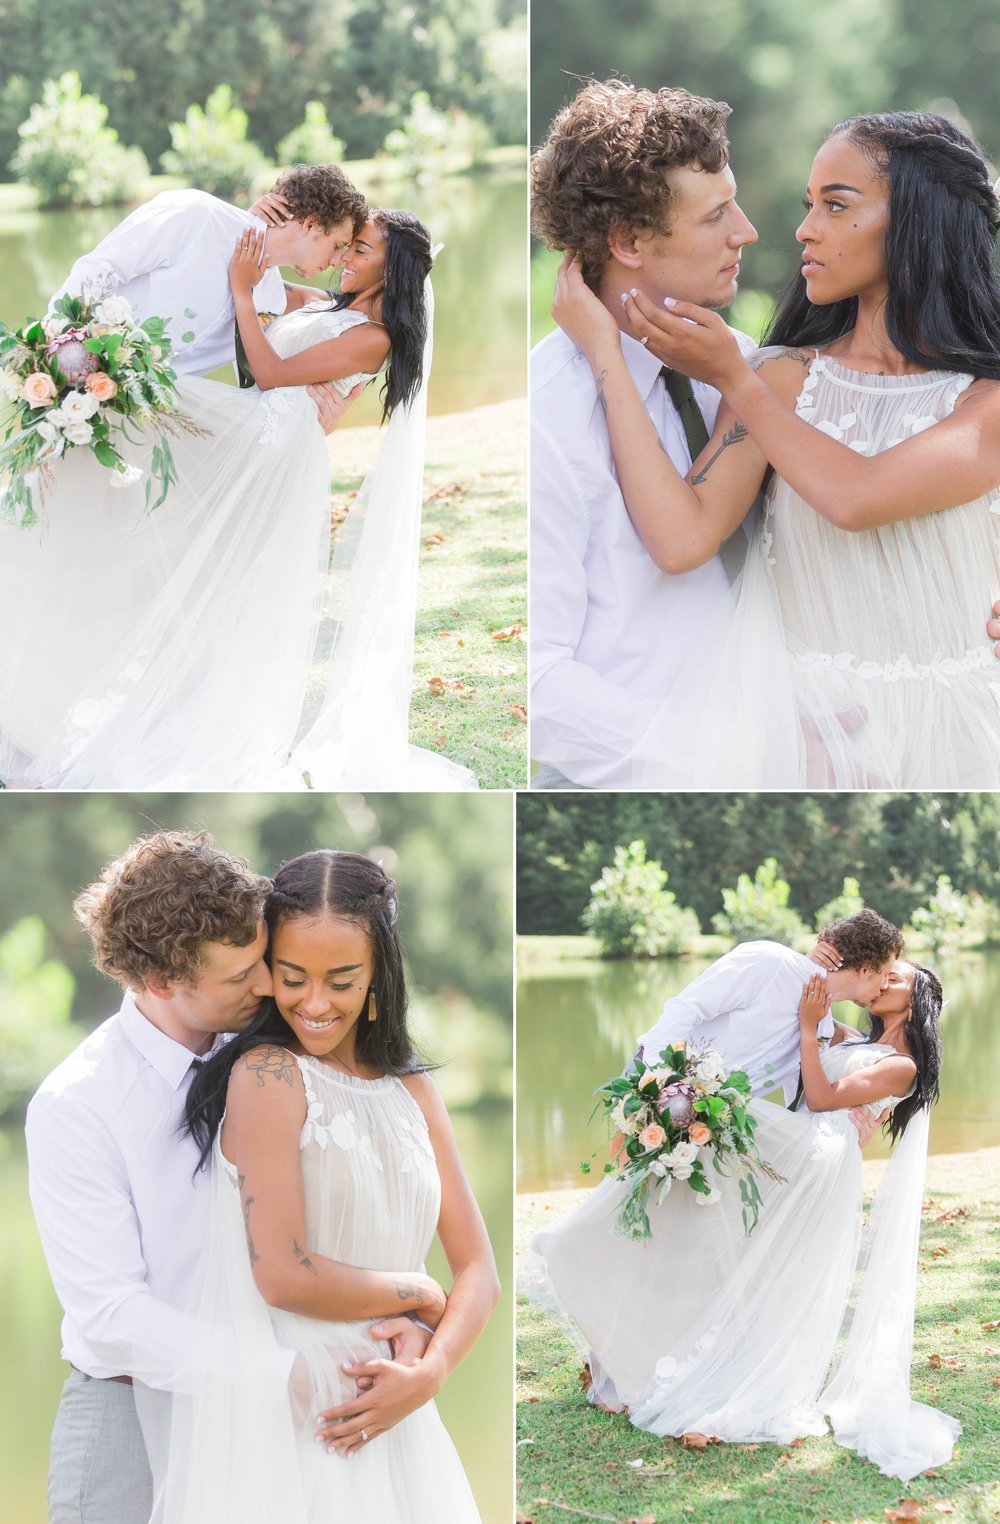 Interracial Wedding Portrait Photography - Asheville Wedding Photographer - Johanna Dye